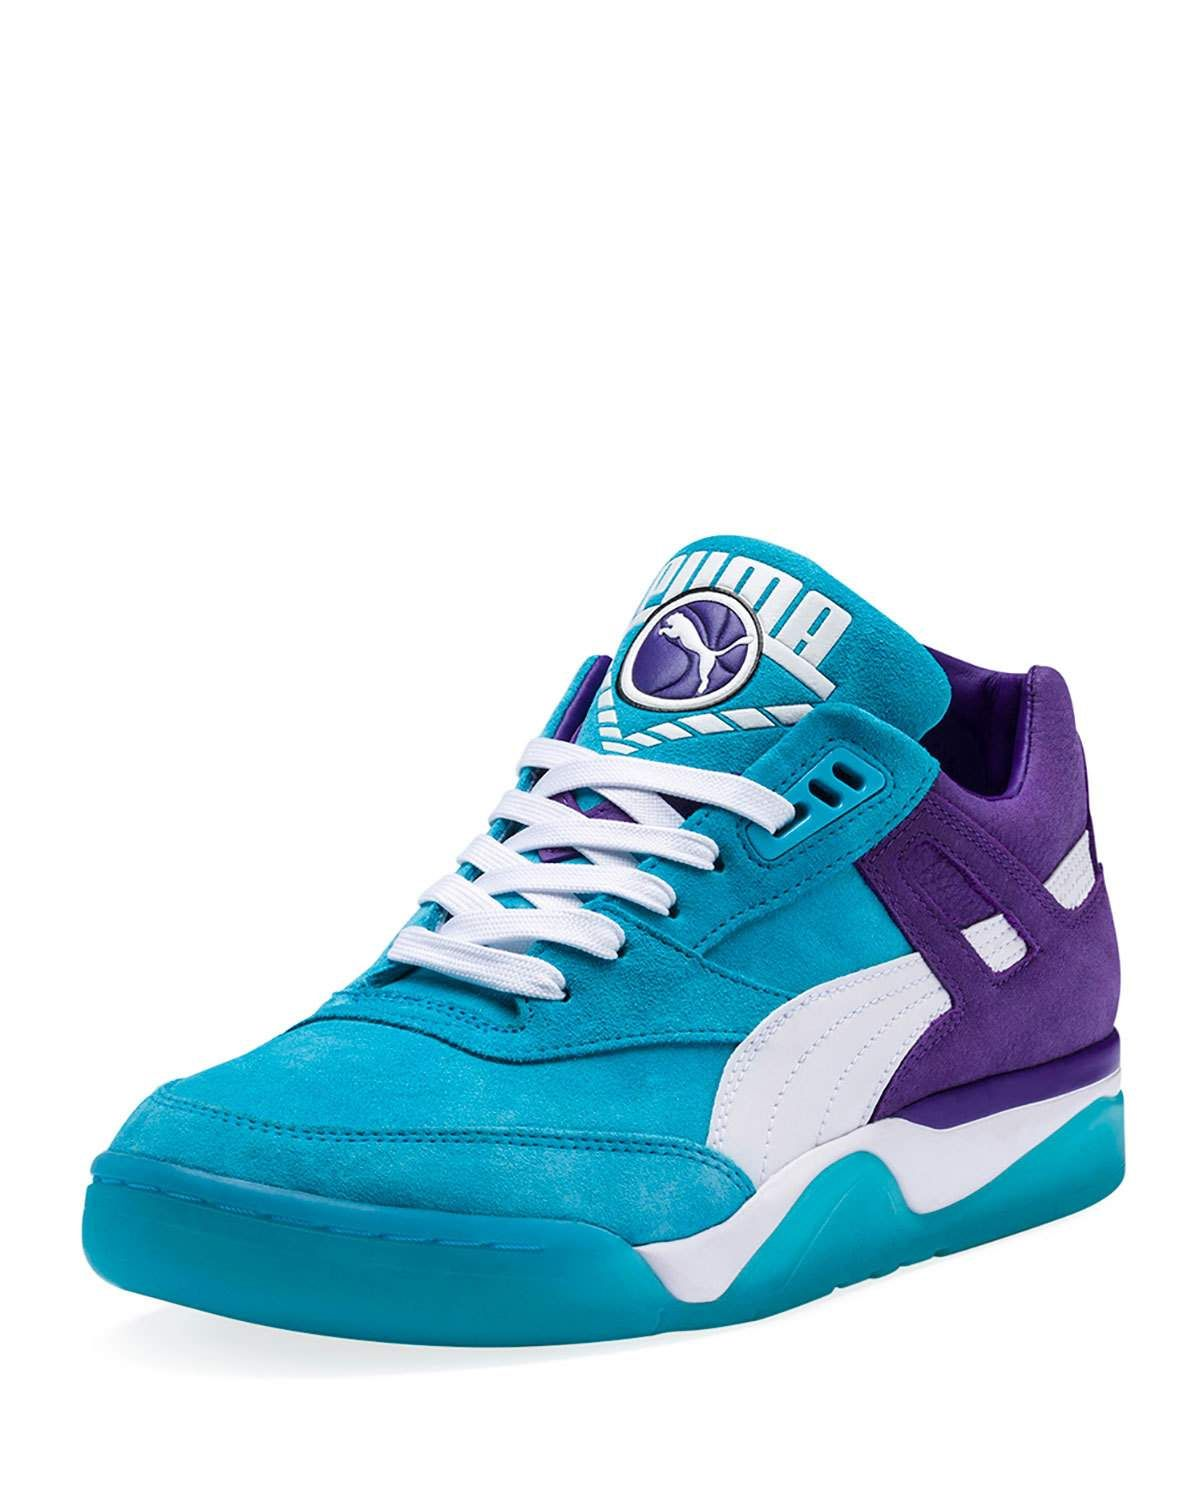 Men's Palace Guard Queen City Sneakers